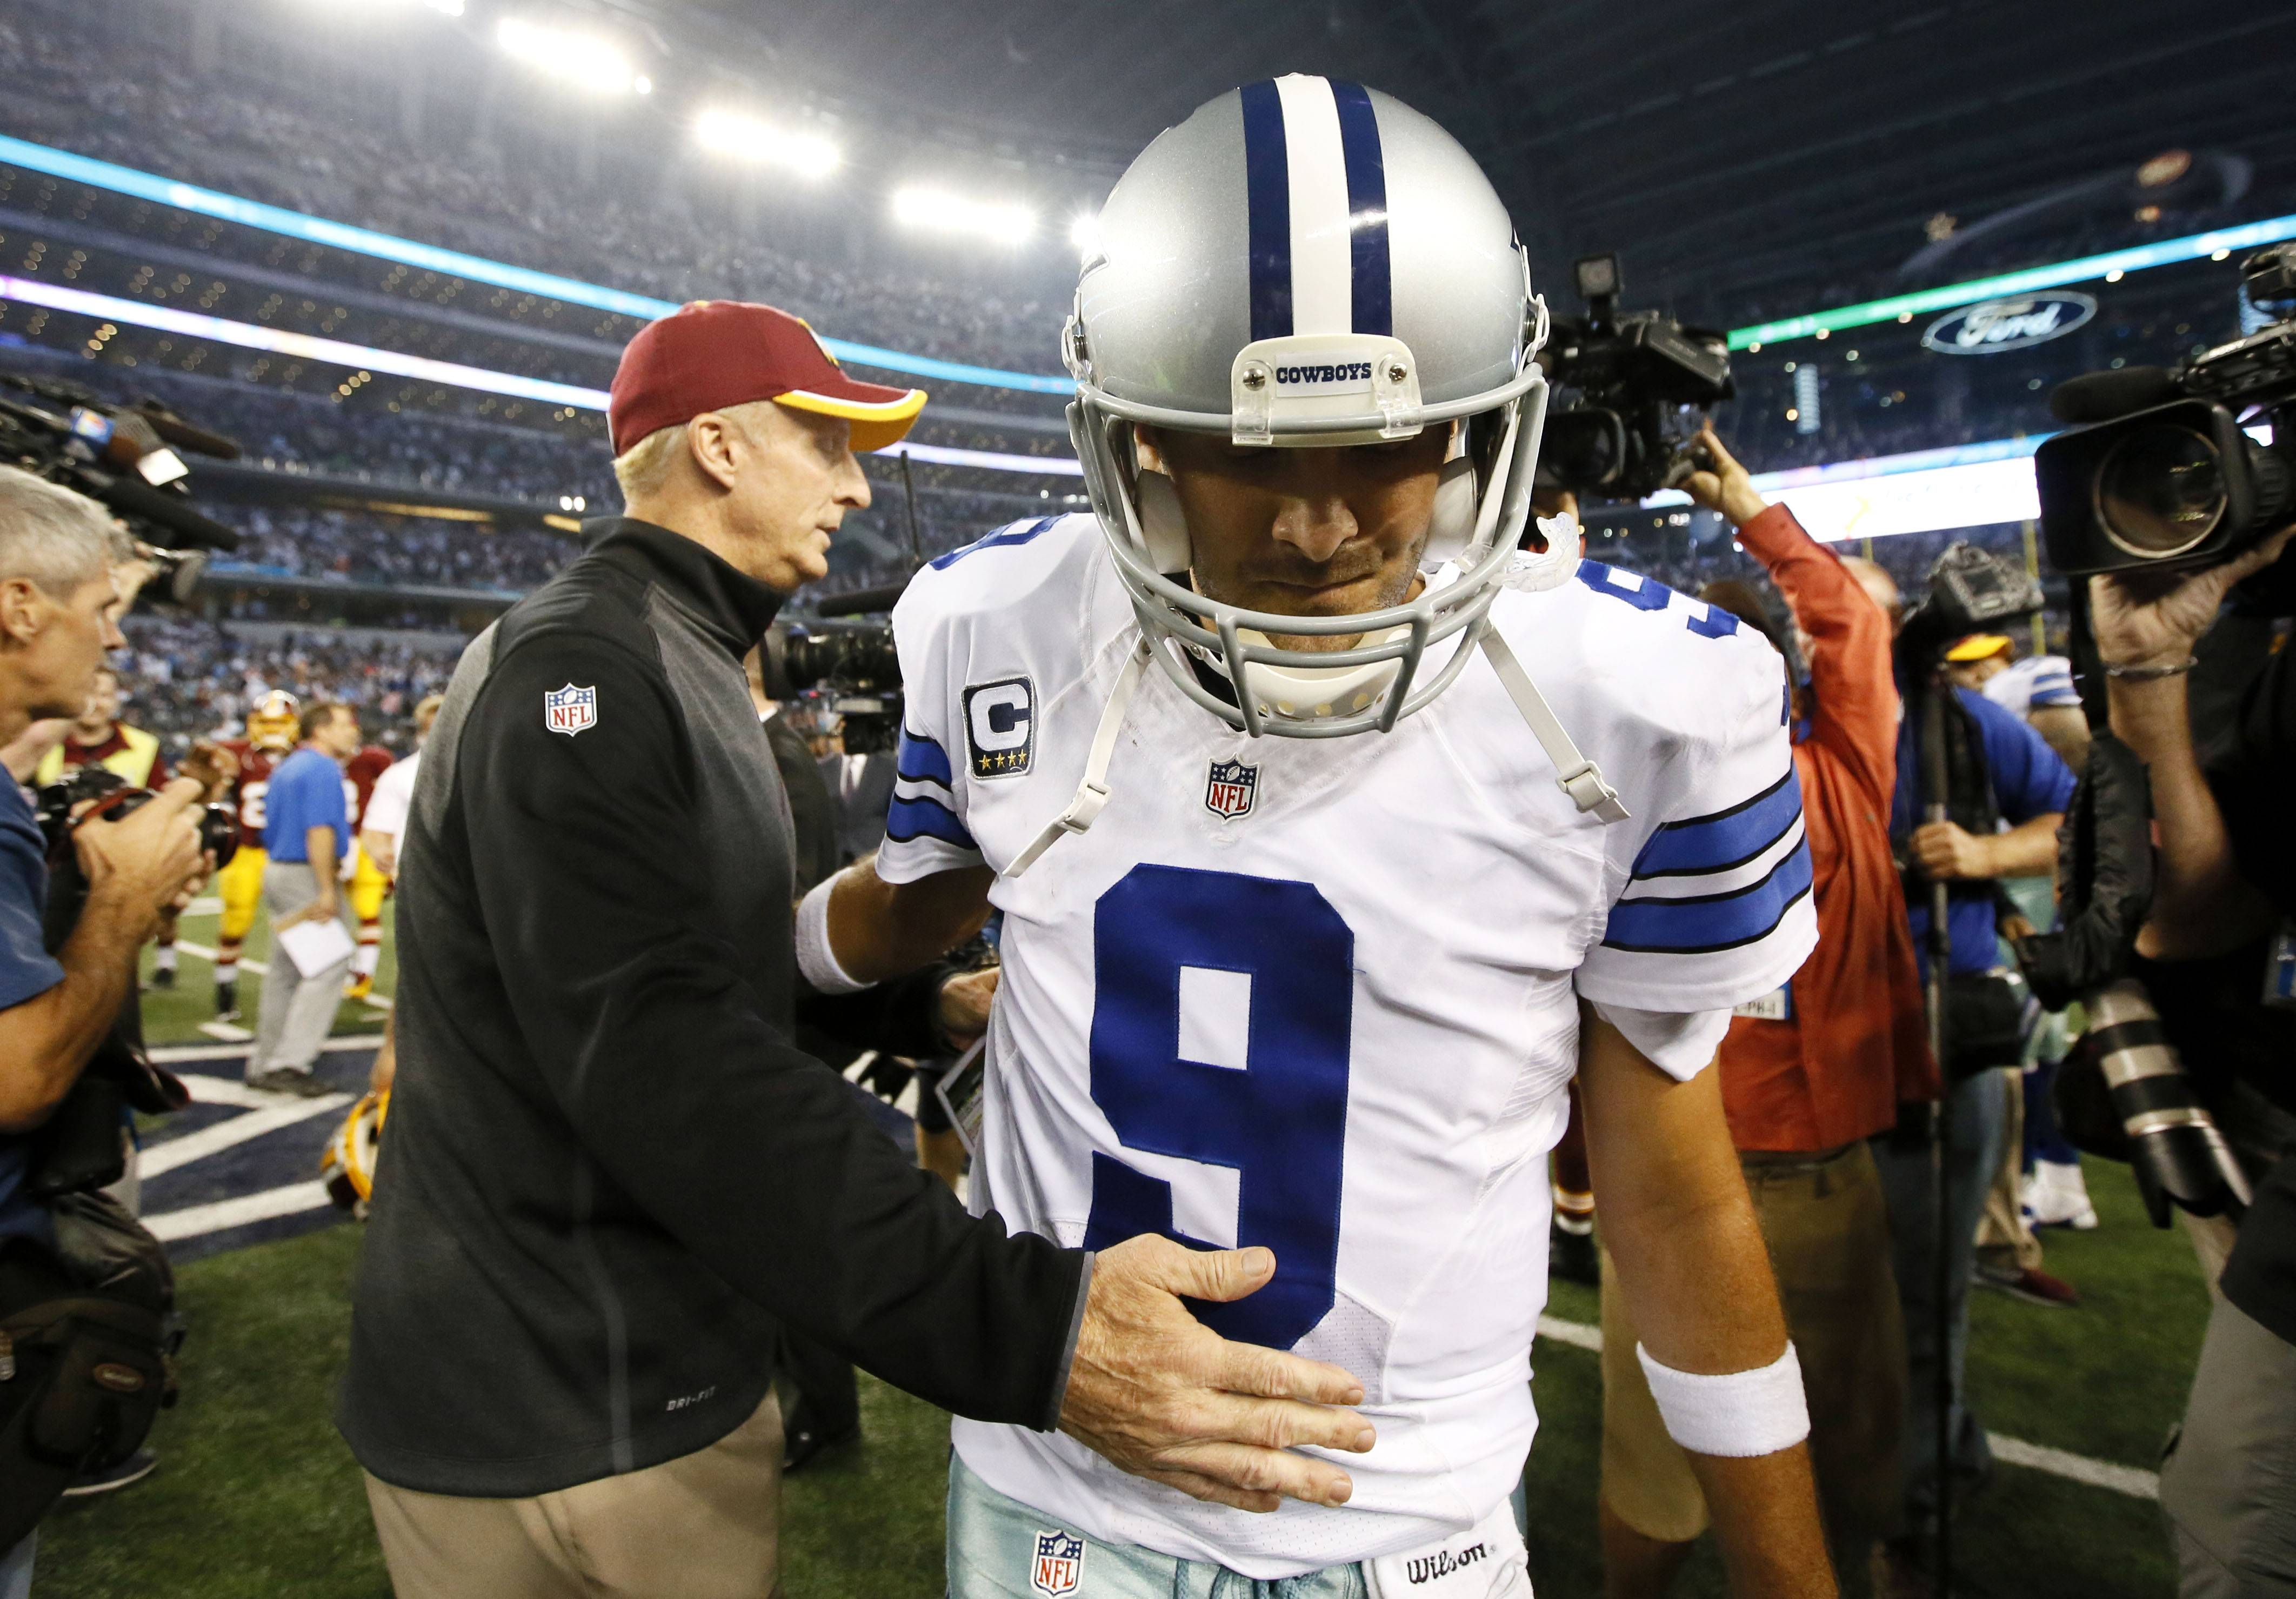 If it's a question of tolerating pain, Tony Romo says he will play Sunday against Arizona — and history supports him on that point. The issue in the 34-year-old Dallas quarterback's mind is whether he can run the offense while dealing with his third back injury in 18 months. He said Wednesday he doesn't know, which goes to owner Jerry Jones' point that it could be a game-time decision against the Cardinals.